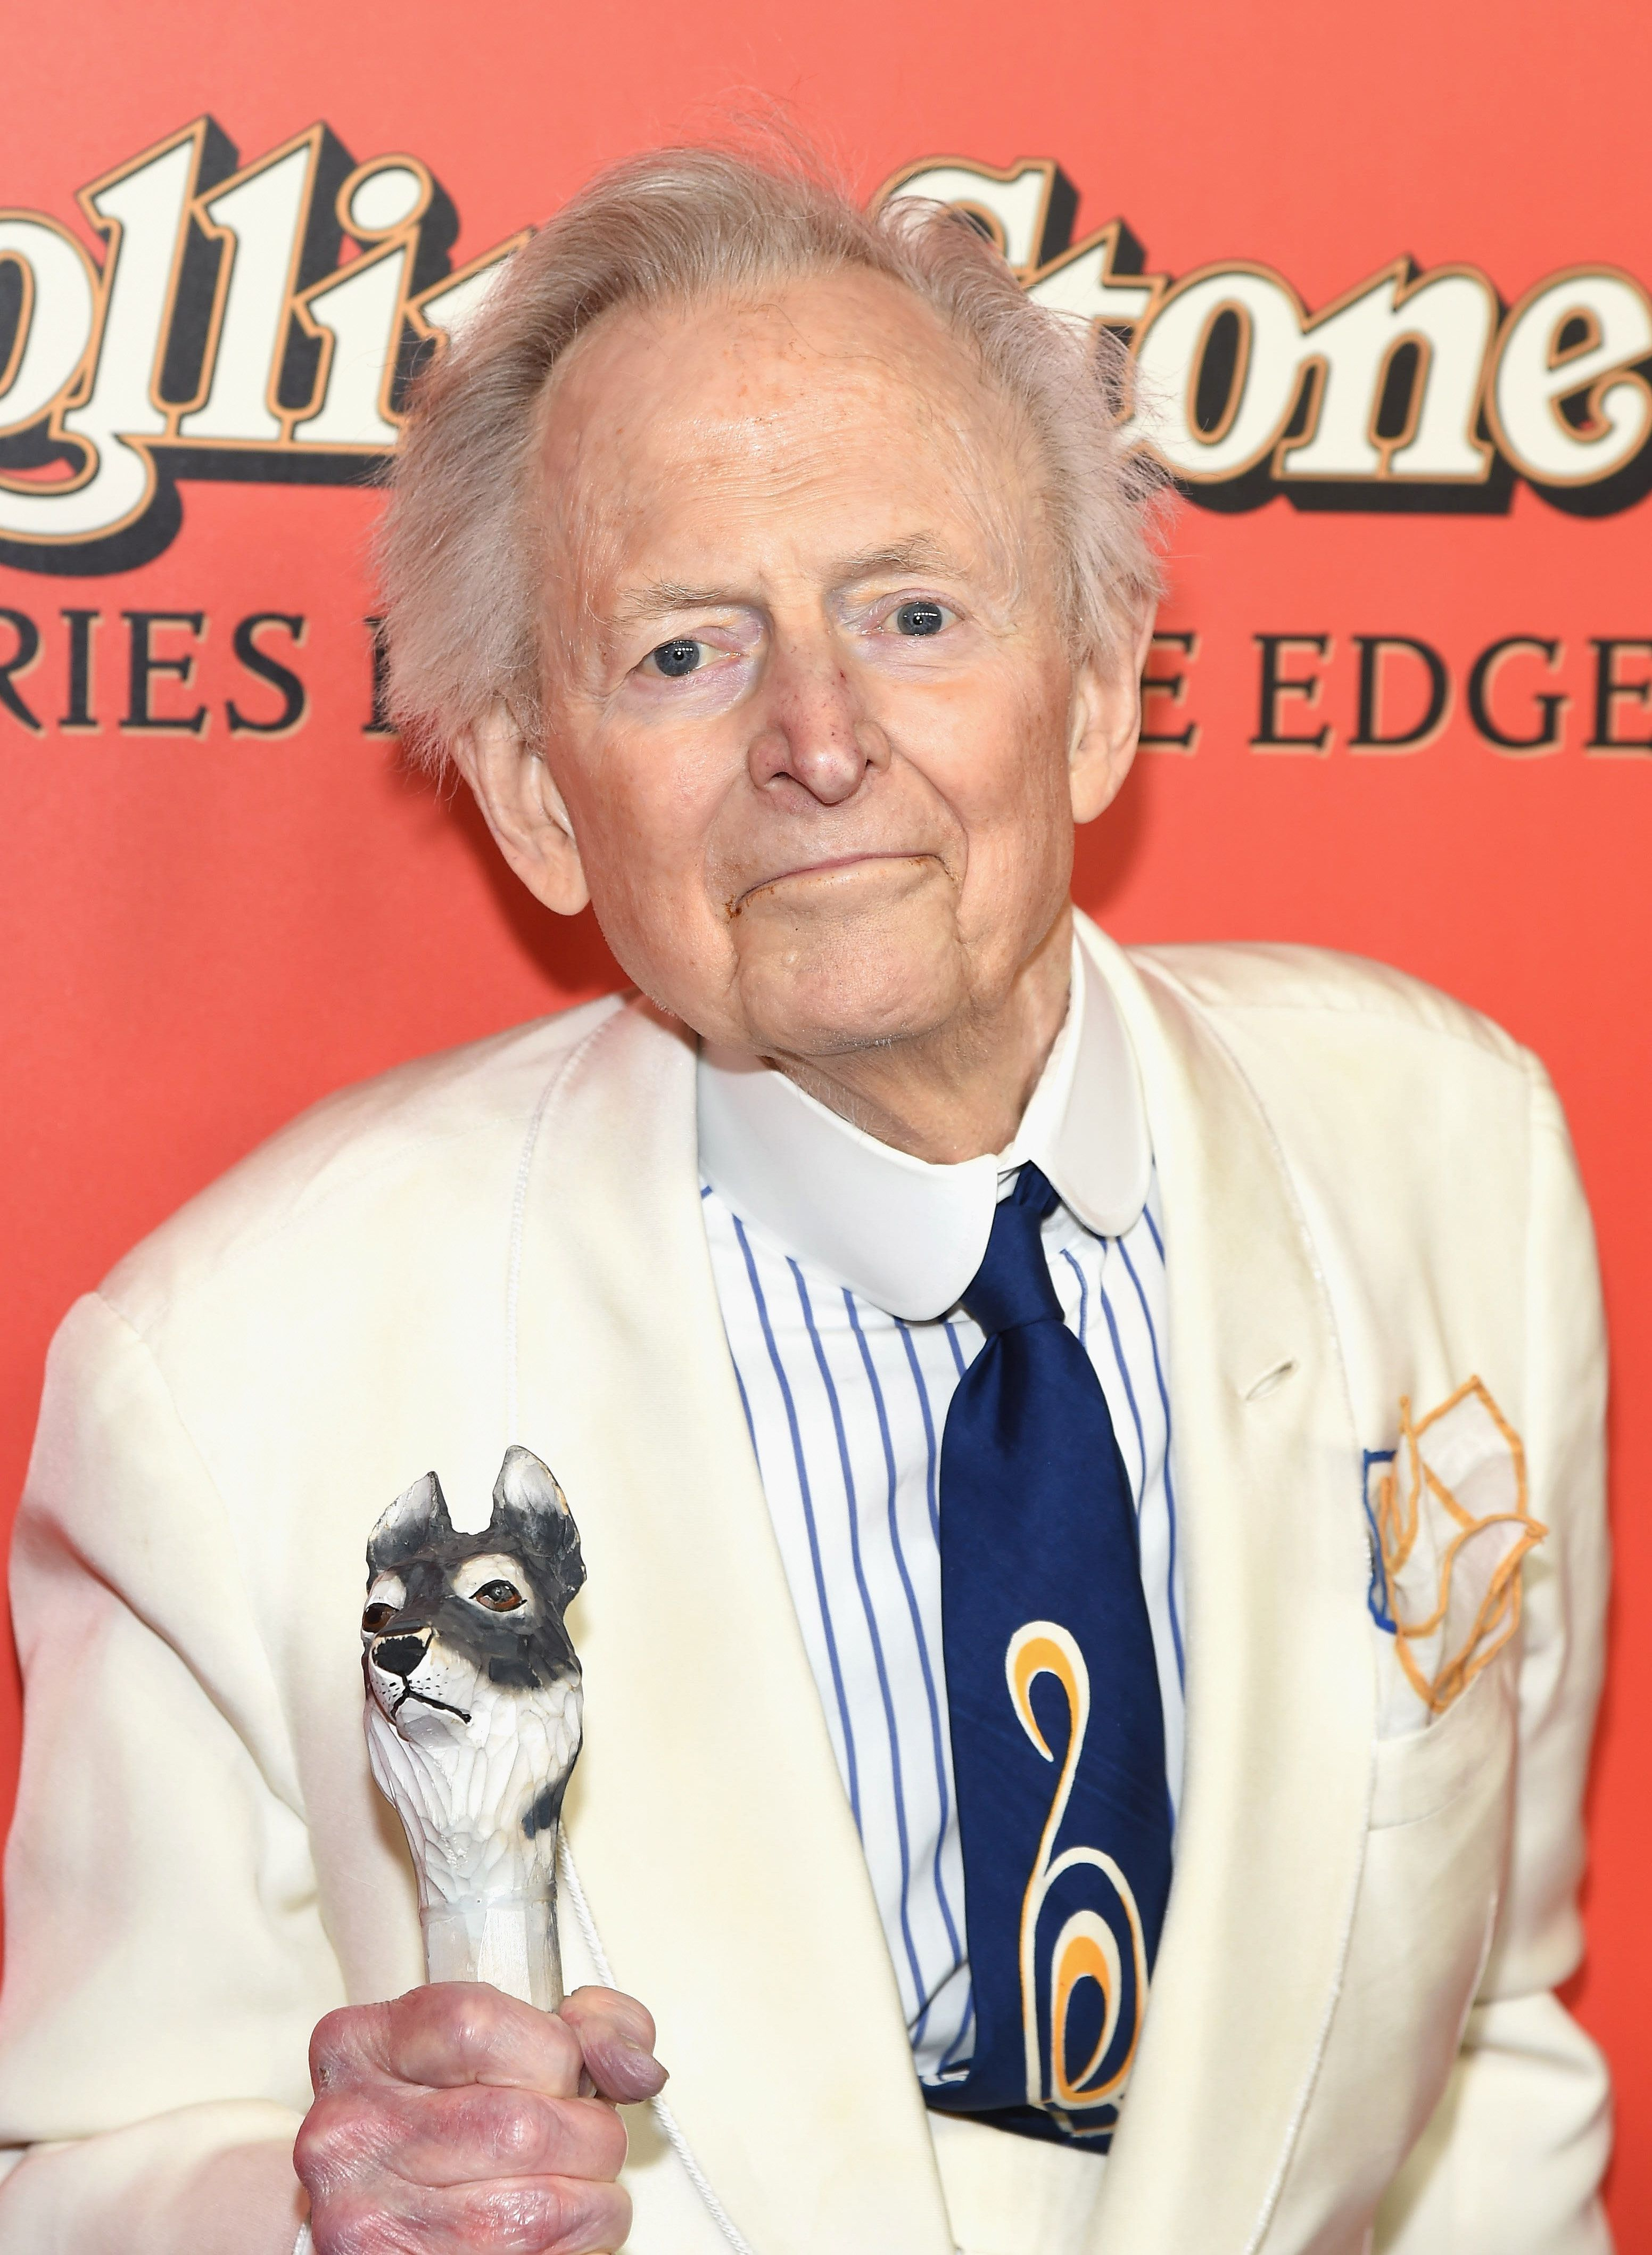 NEW YORK, NY - OCTOBER 30: Author Tom Wolfe attends 'Rolling Stone Stories From The Edge' world premiere at Florence Gould Hall on October 30, 2017 in New York City.  (Photo by Gary Gershoff/WireImage)